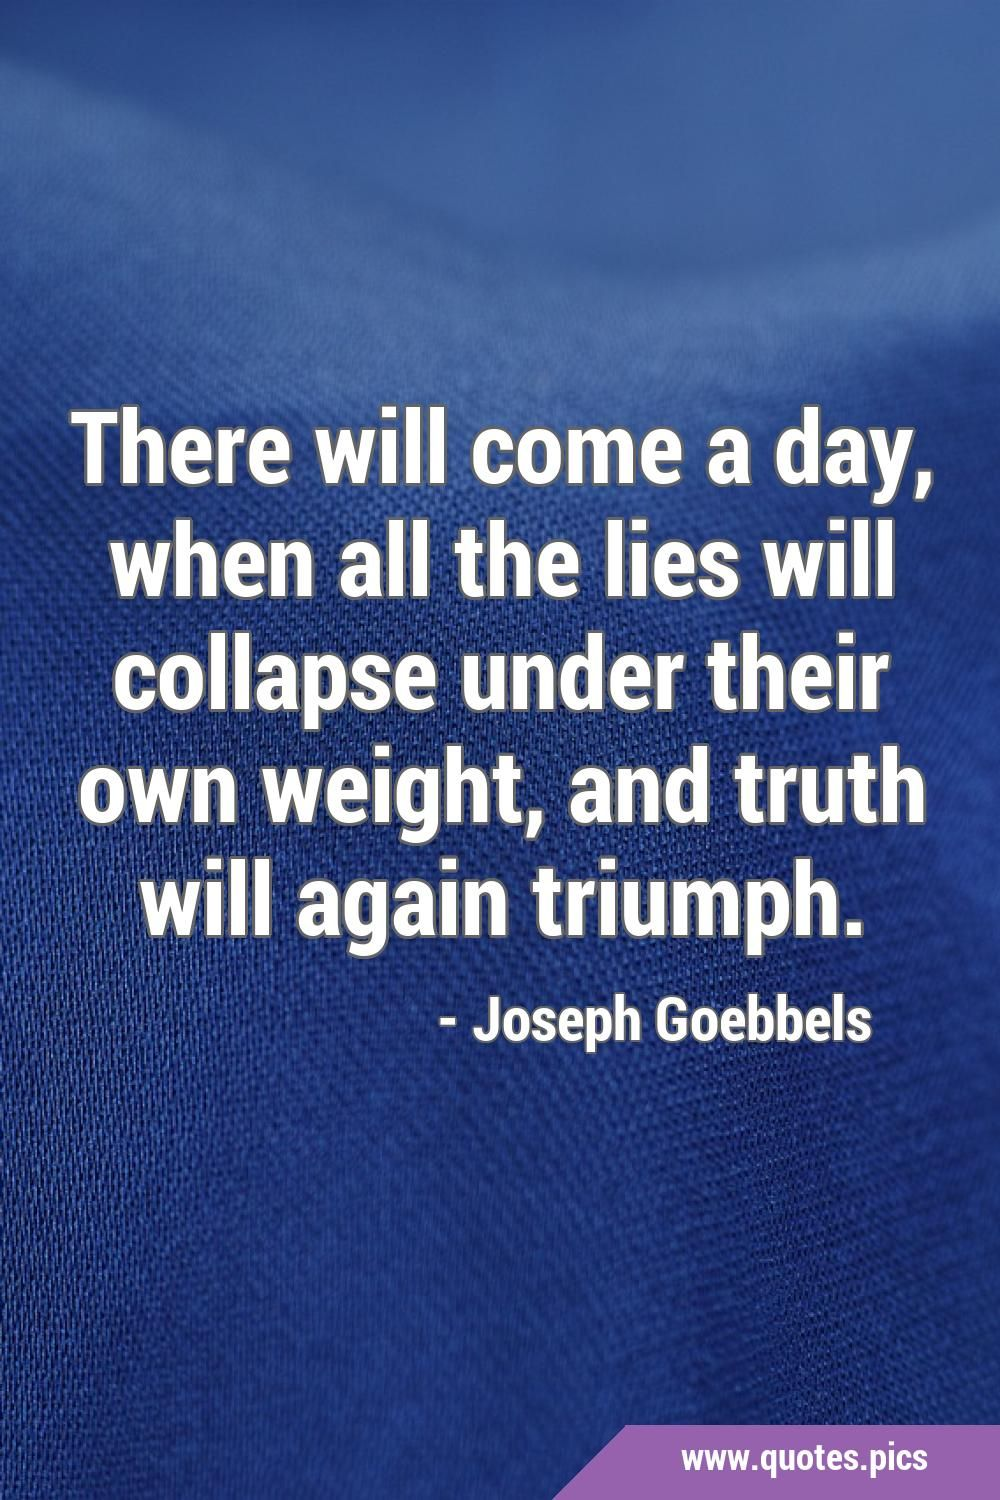 There will come a day, when all the lies will collapse under their own weight, and truth will again triumph.